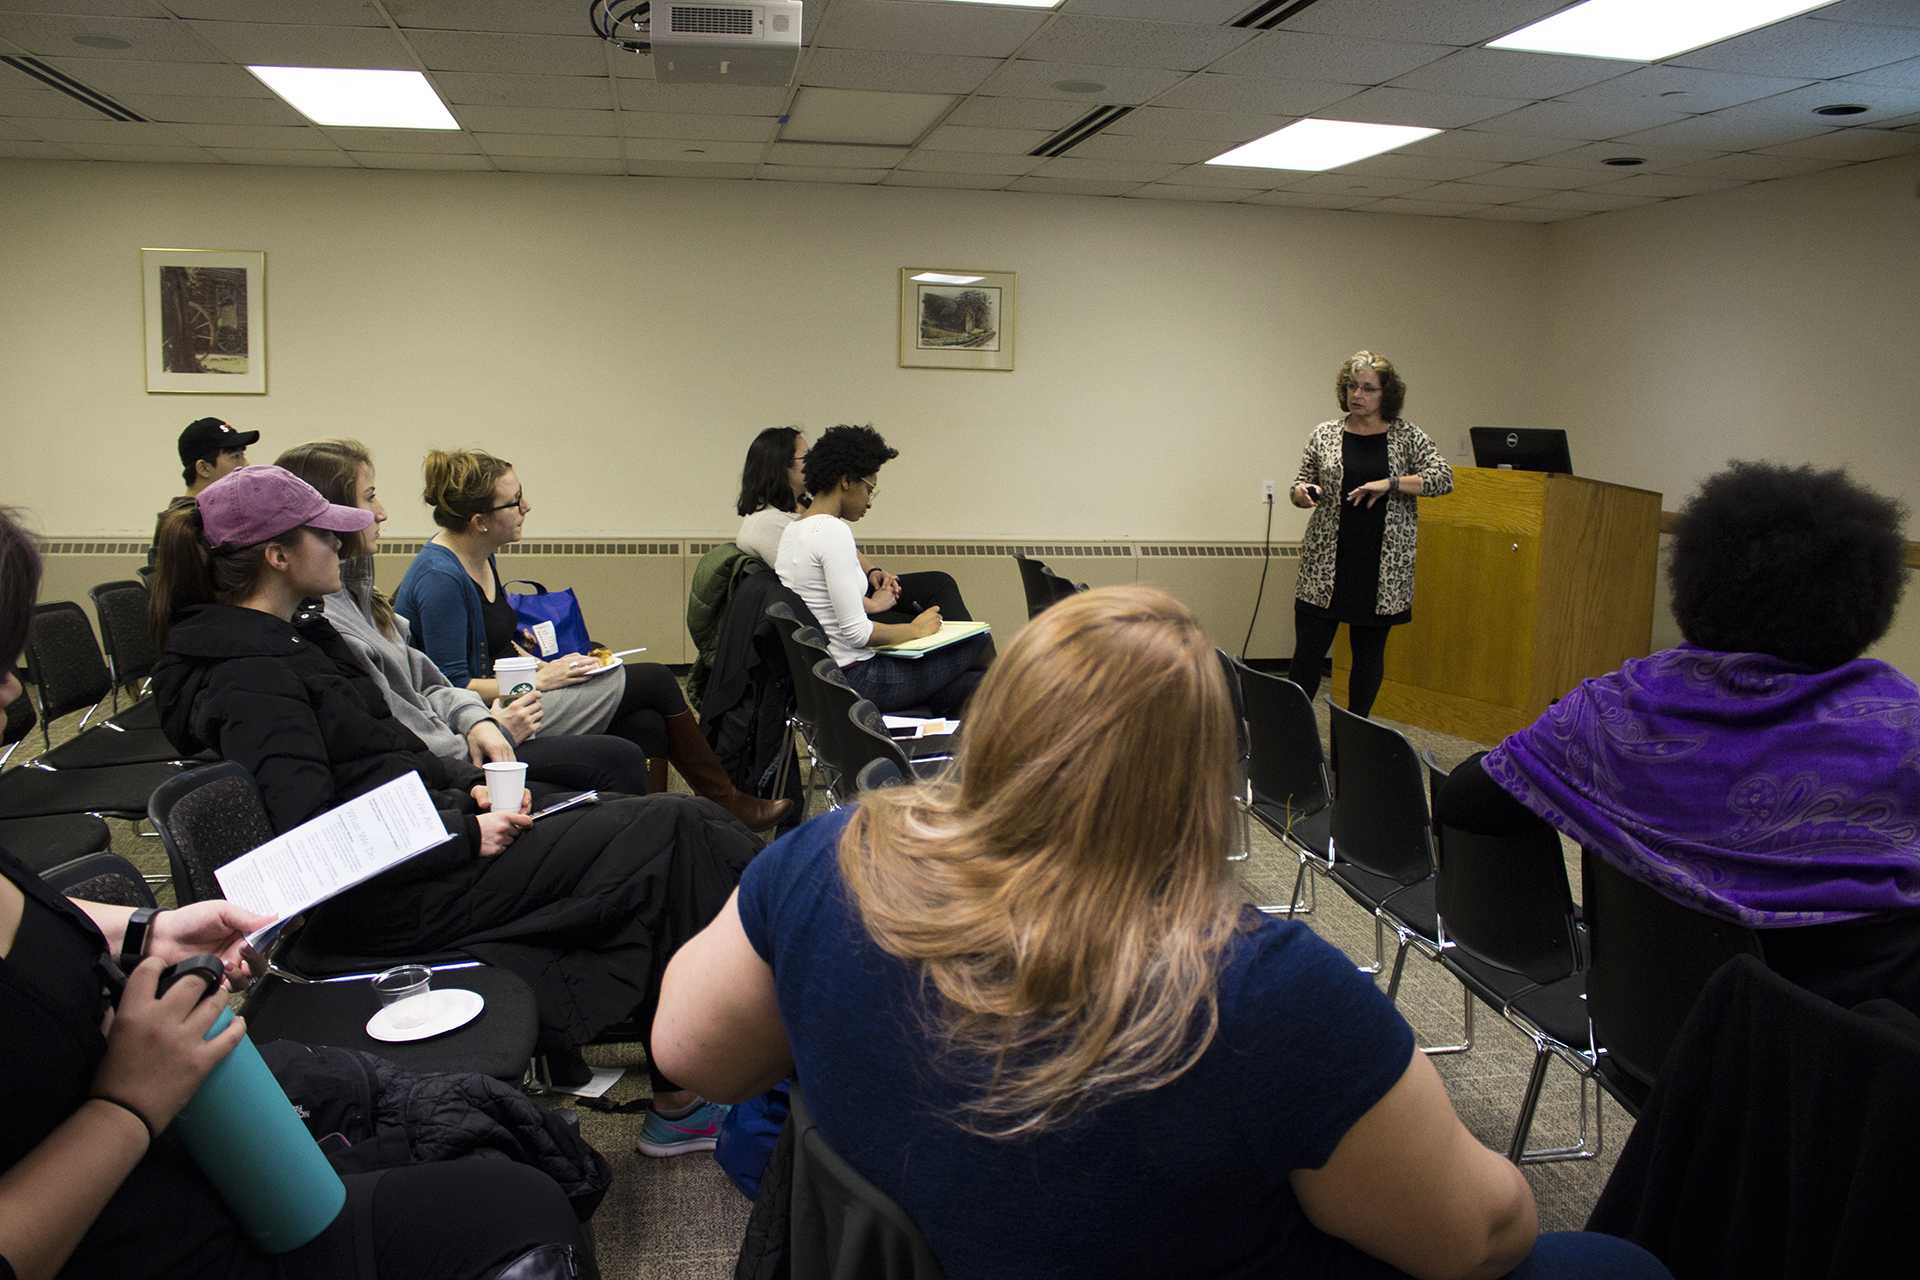 Audience members listen as Shelter House executive director Crissy Canganelli speaks about homelessness in Johnson county at the Cup O' Justice: Homelessness in Iowa and Our Local Response event in the IMU on Wednesday, Feb. 1, 2017. (The Daily Iowan/Lily Smith)